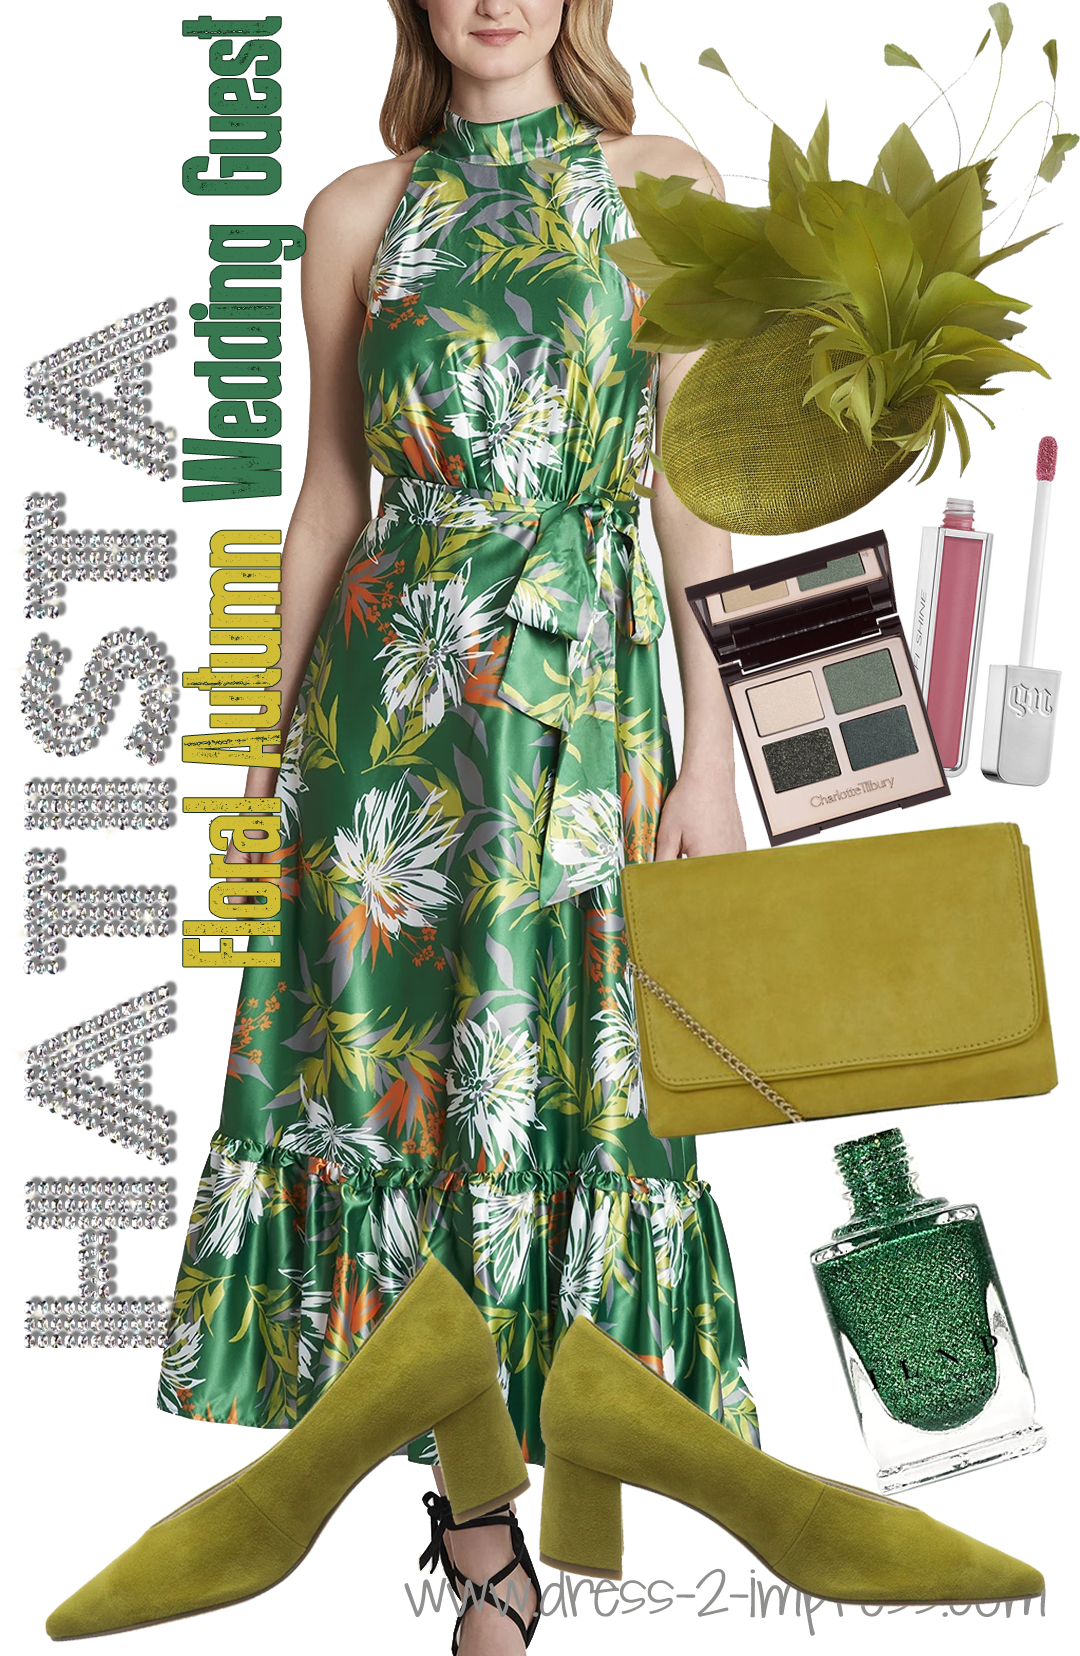 How to Wear Green. Outfit ideas for Autumn Wedding Guests. What to wear for Royal Ascot. Outfit ideas for an Autumn Wedding. Autumn Mother of the Bride outfits. What to wear to the Races. What to wear with a Green Dress. How to wear Green.